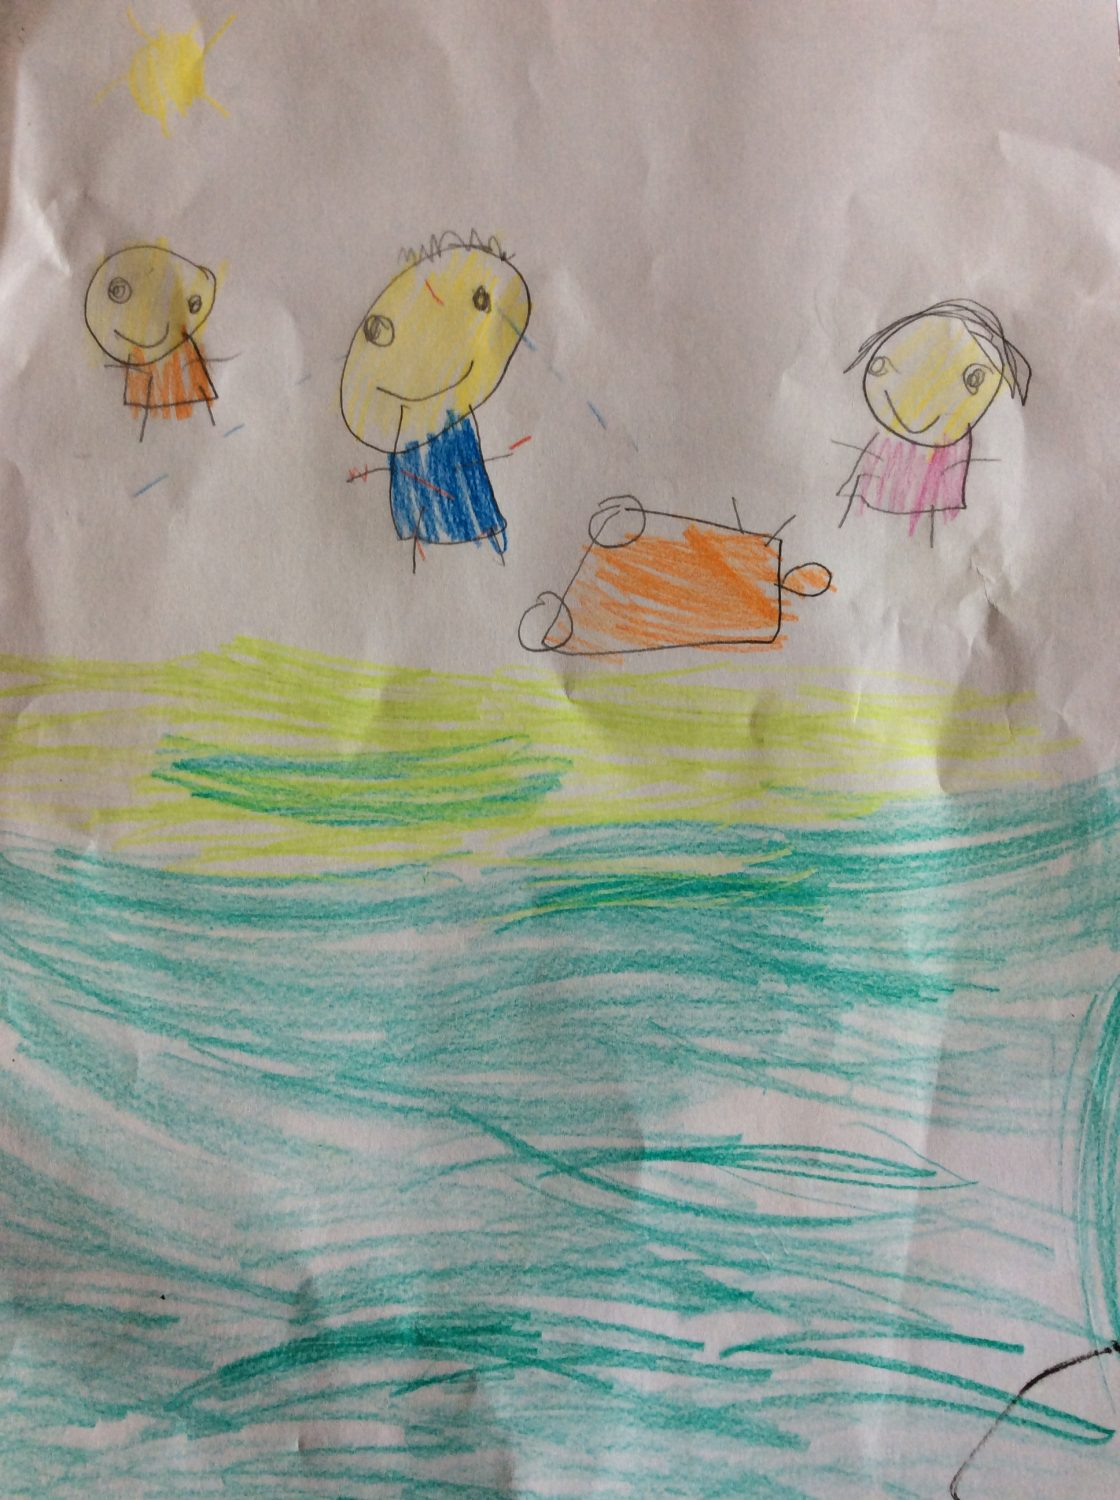 childrens drawing of kids playing